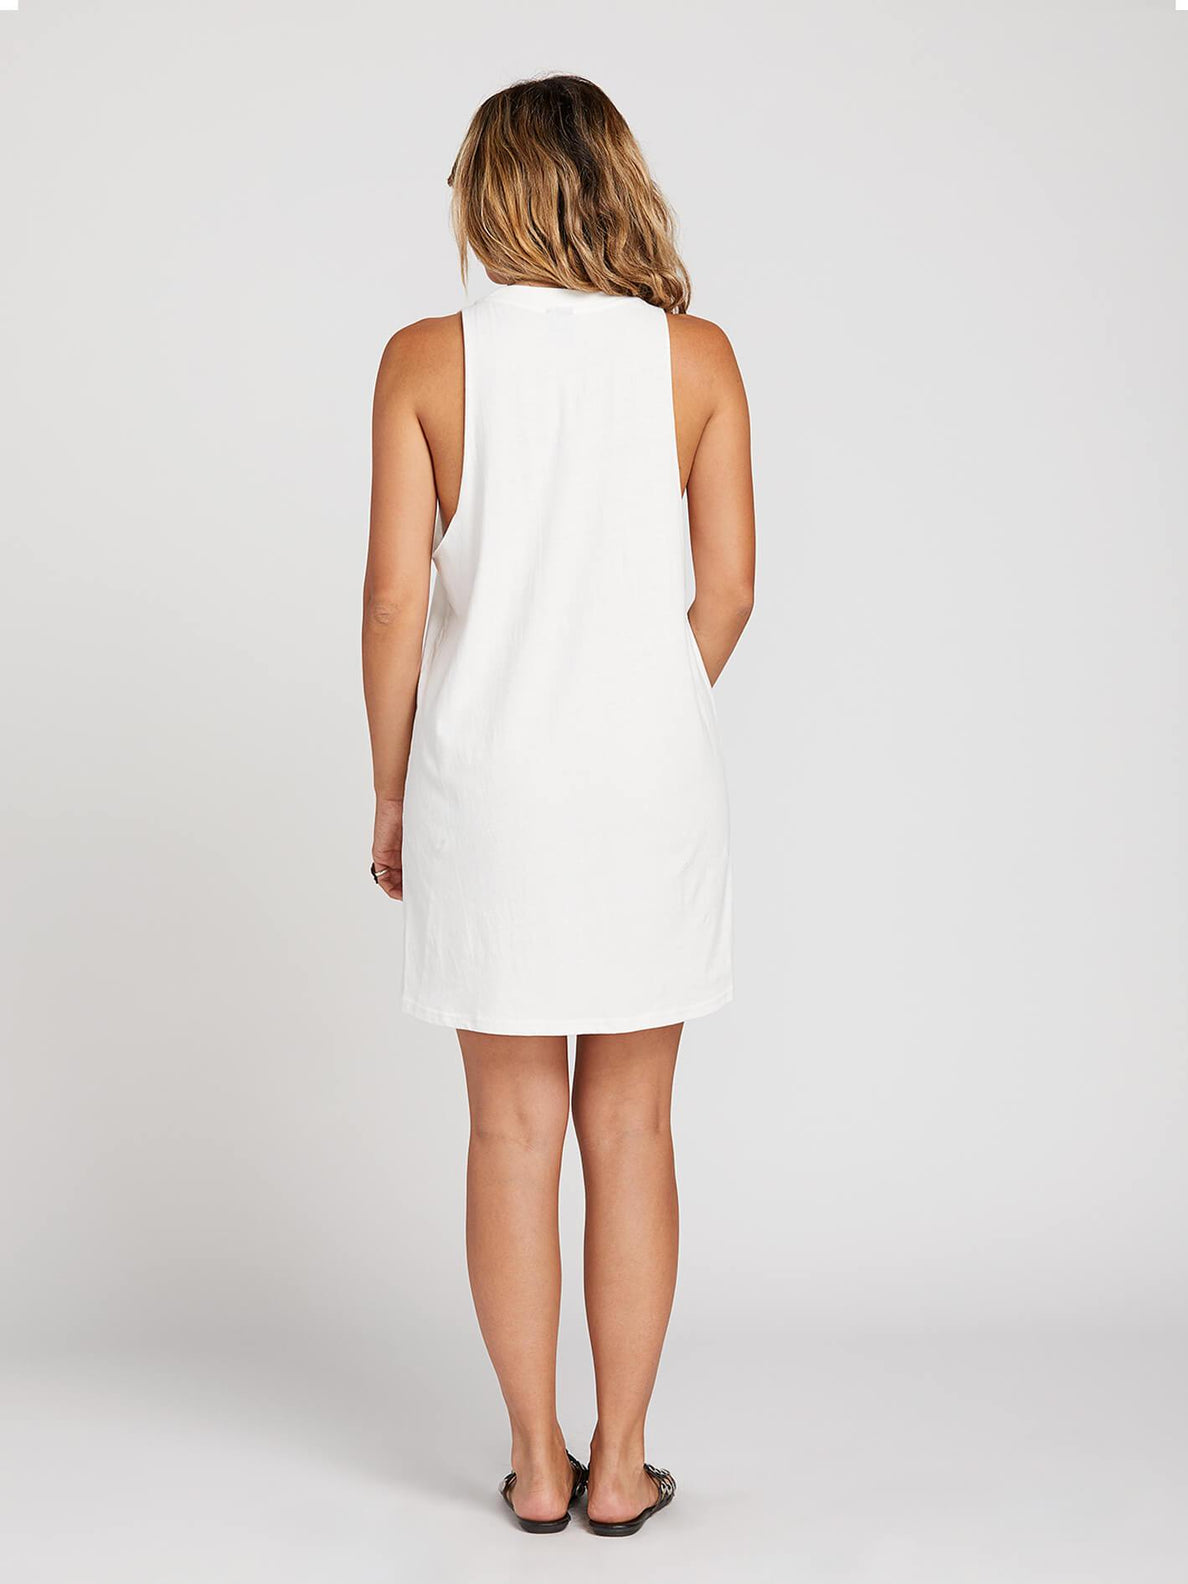 Day By Day Dress In White, Back View